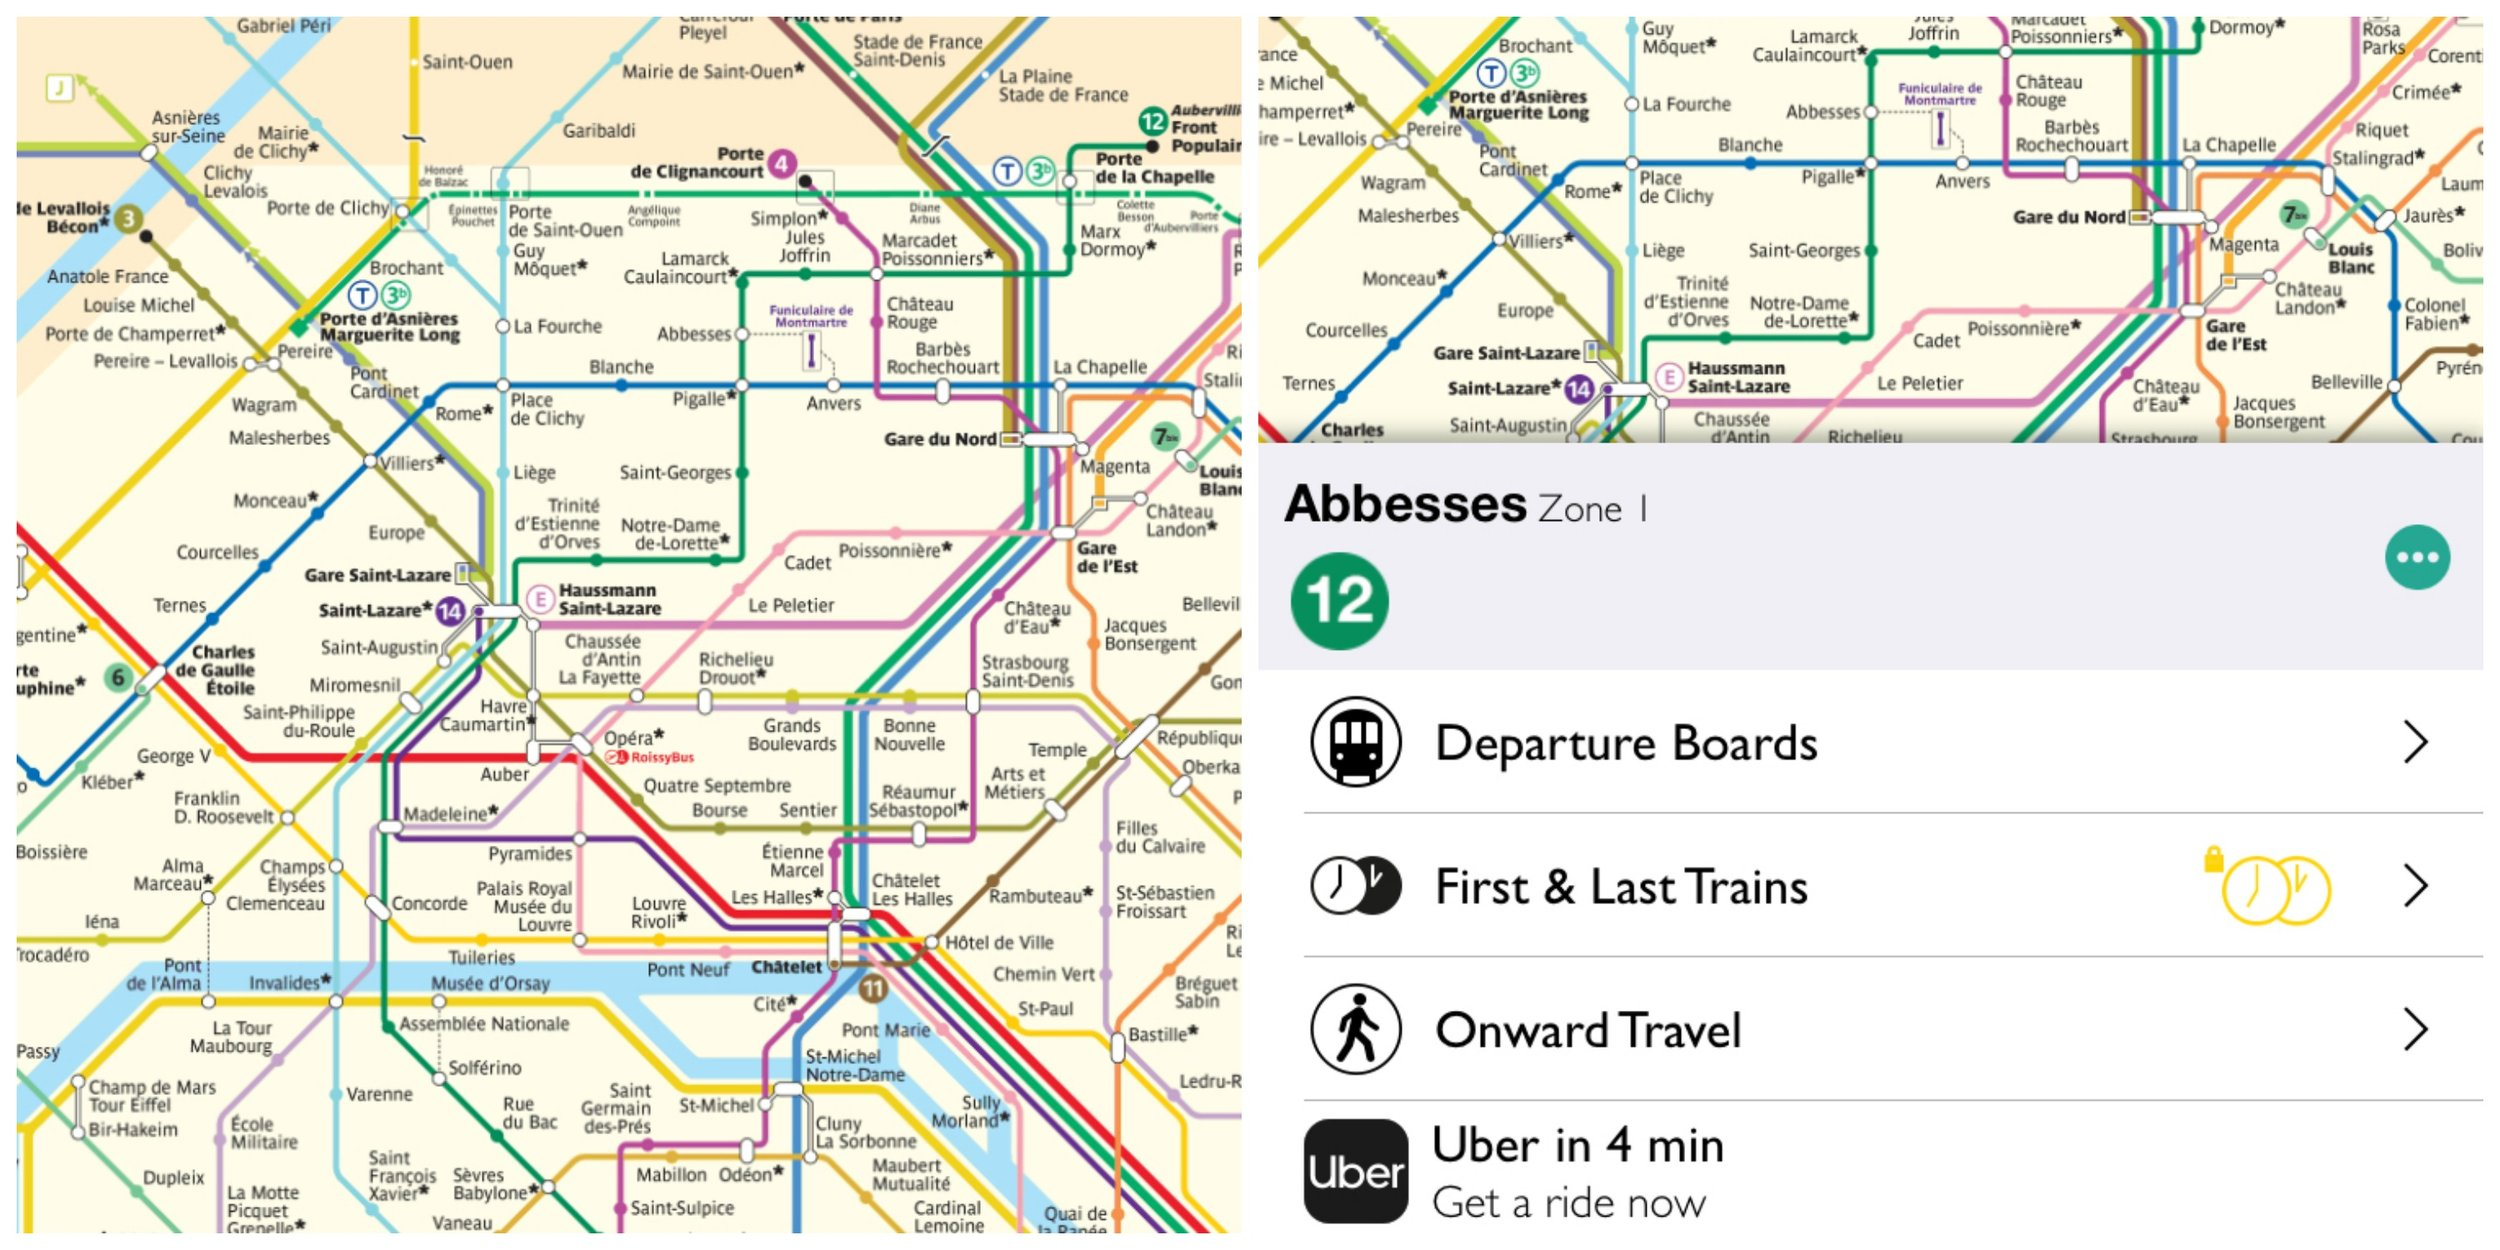 15 apps to navigate Paris everyday parisian